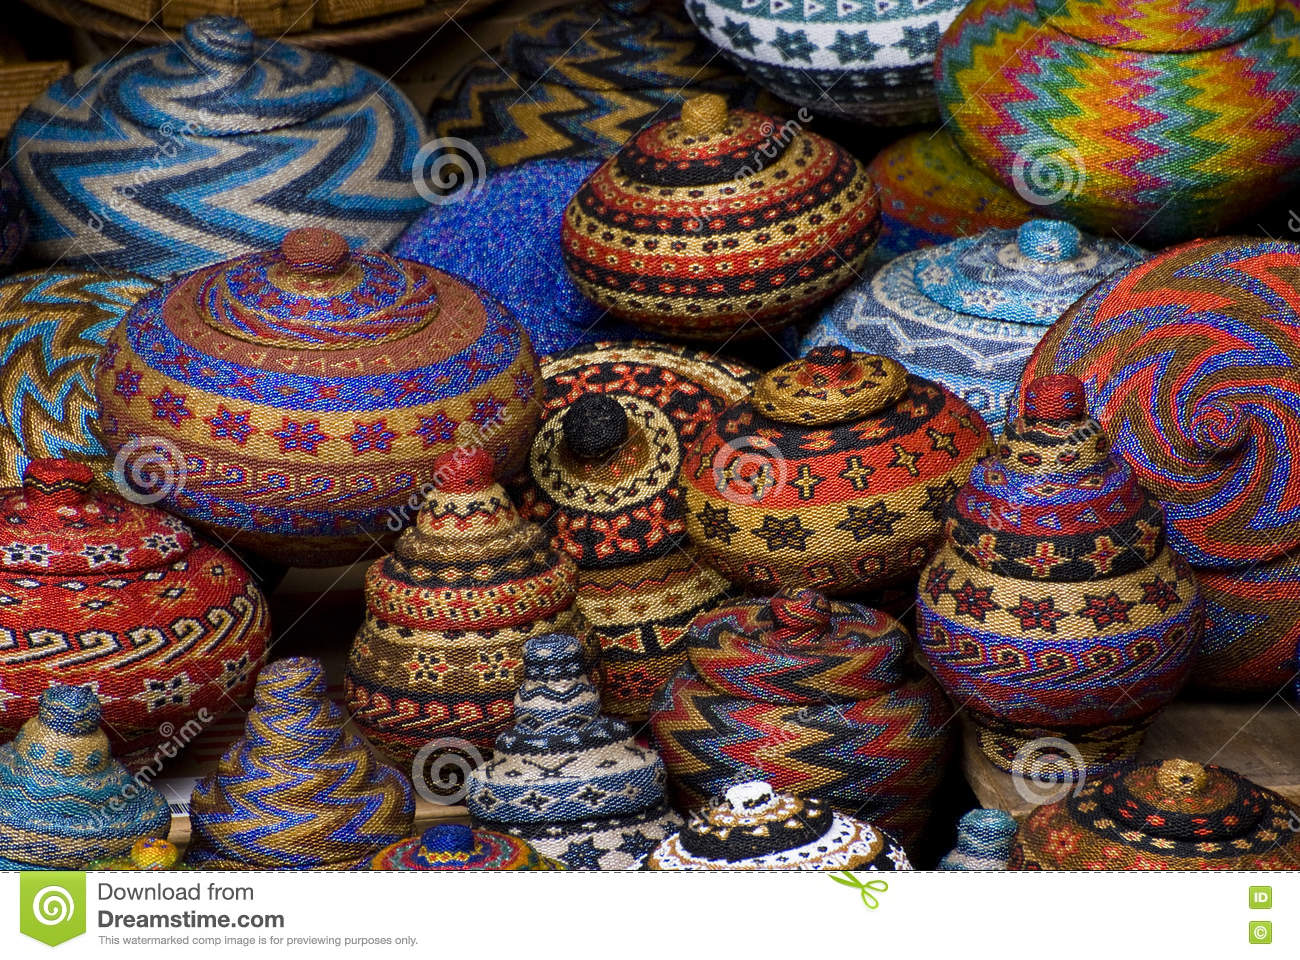 Bali art market stock photo image of handicraft product for Arts and crafts industry